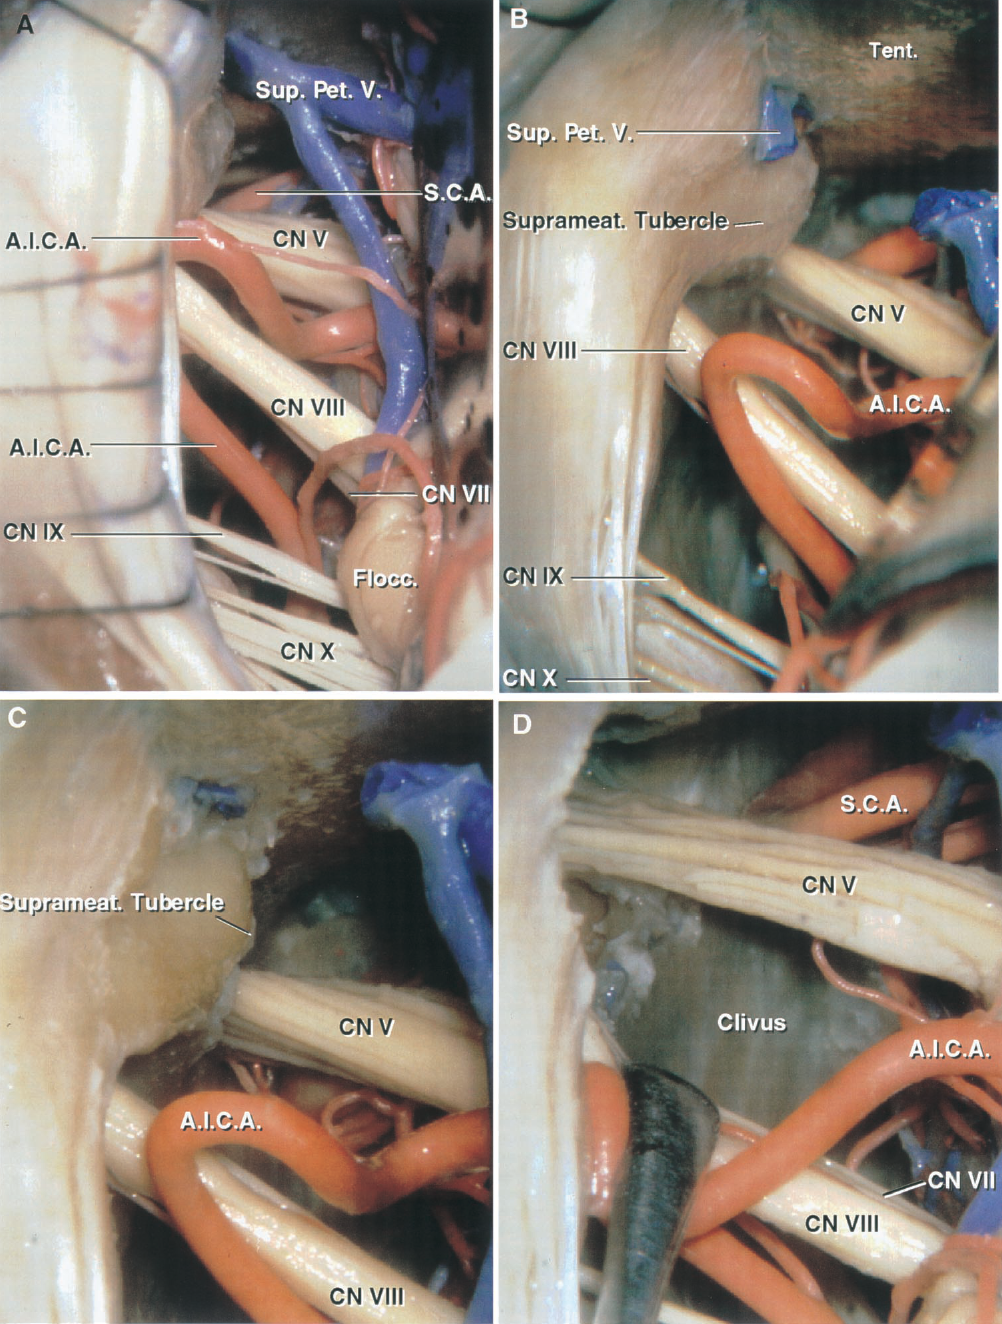 FIGURE 4.15. Suprameatal variant of the retrosigmoid approach. A, the cerebellum has been elevated to expose the nerves in the cerebellopontine angle. A large petrosal vein blocks access to the suprameatal area. B, the superior petrosal vein has been divided to expose the suprameatal tubercle located above the porus of the internal acoustic meatus and lateral to the trigeminal nerve. C, the dura over the suprameatal tubercle has been removed in preparation for drilling.D, removing thesuprameatal bone, including the tubercle, extends the exposure along the posterior trigeminal root by approximately 1 cm and increases access to the front of the brainstem and clivus. A.I.C.A., anteroinferior cerebellar artery; CN, cranial nerve; Flocc., flocculus; Pet., petrosal; S.C.A., superior cerebellar artery; Sup., superior; Suprameat., suprameatal; V., vein.